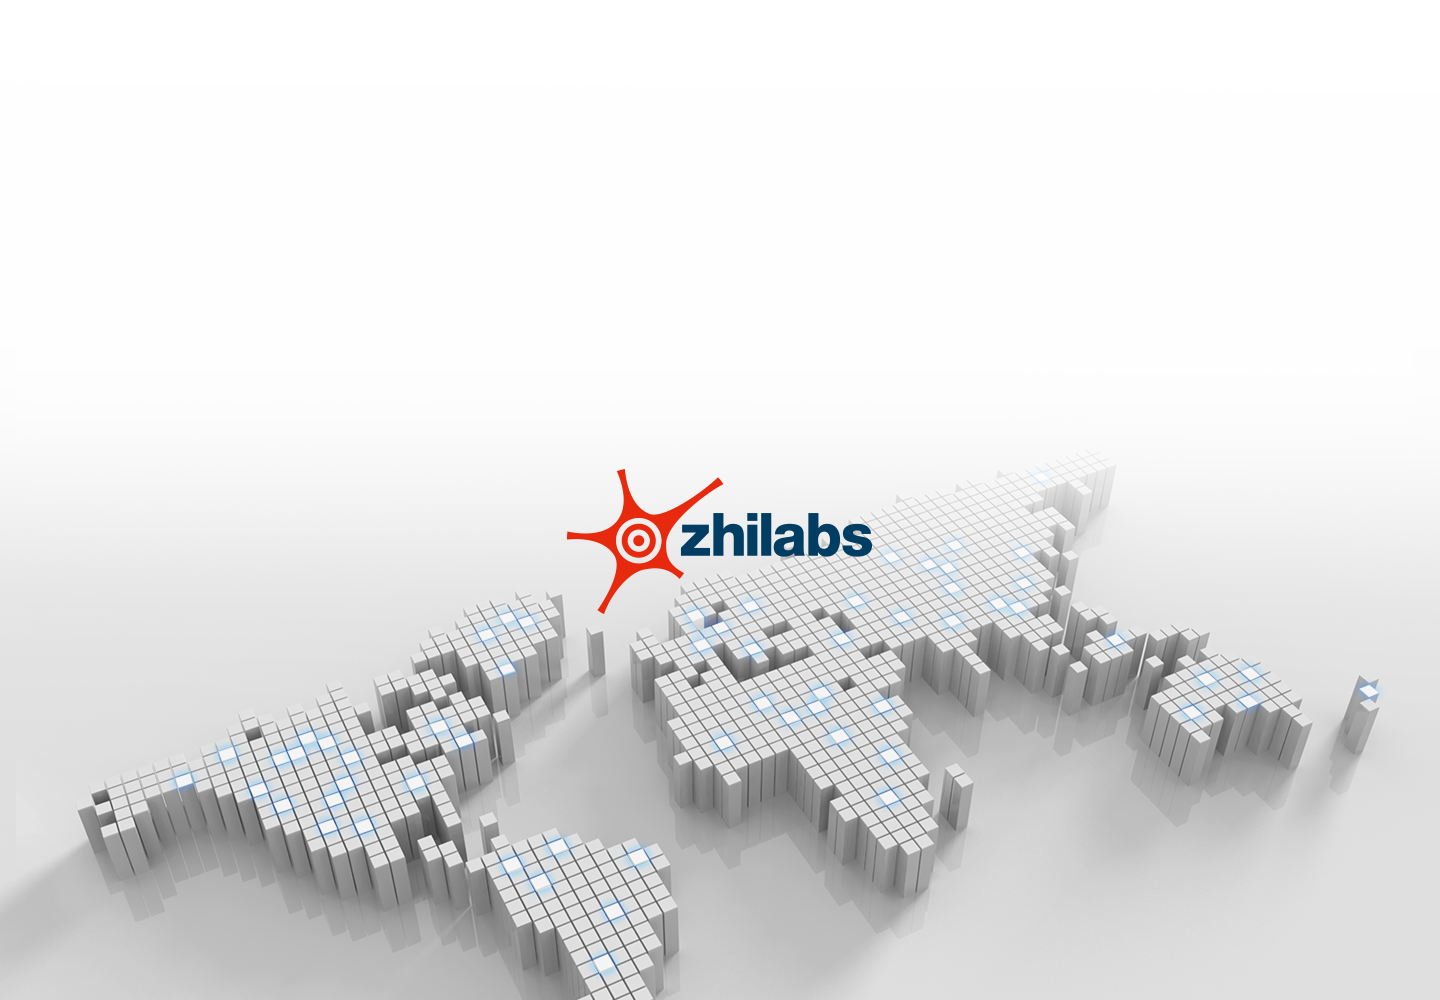 An illustrative image of Zhilabs logo over world map to show the company's global business presence.